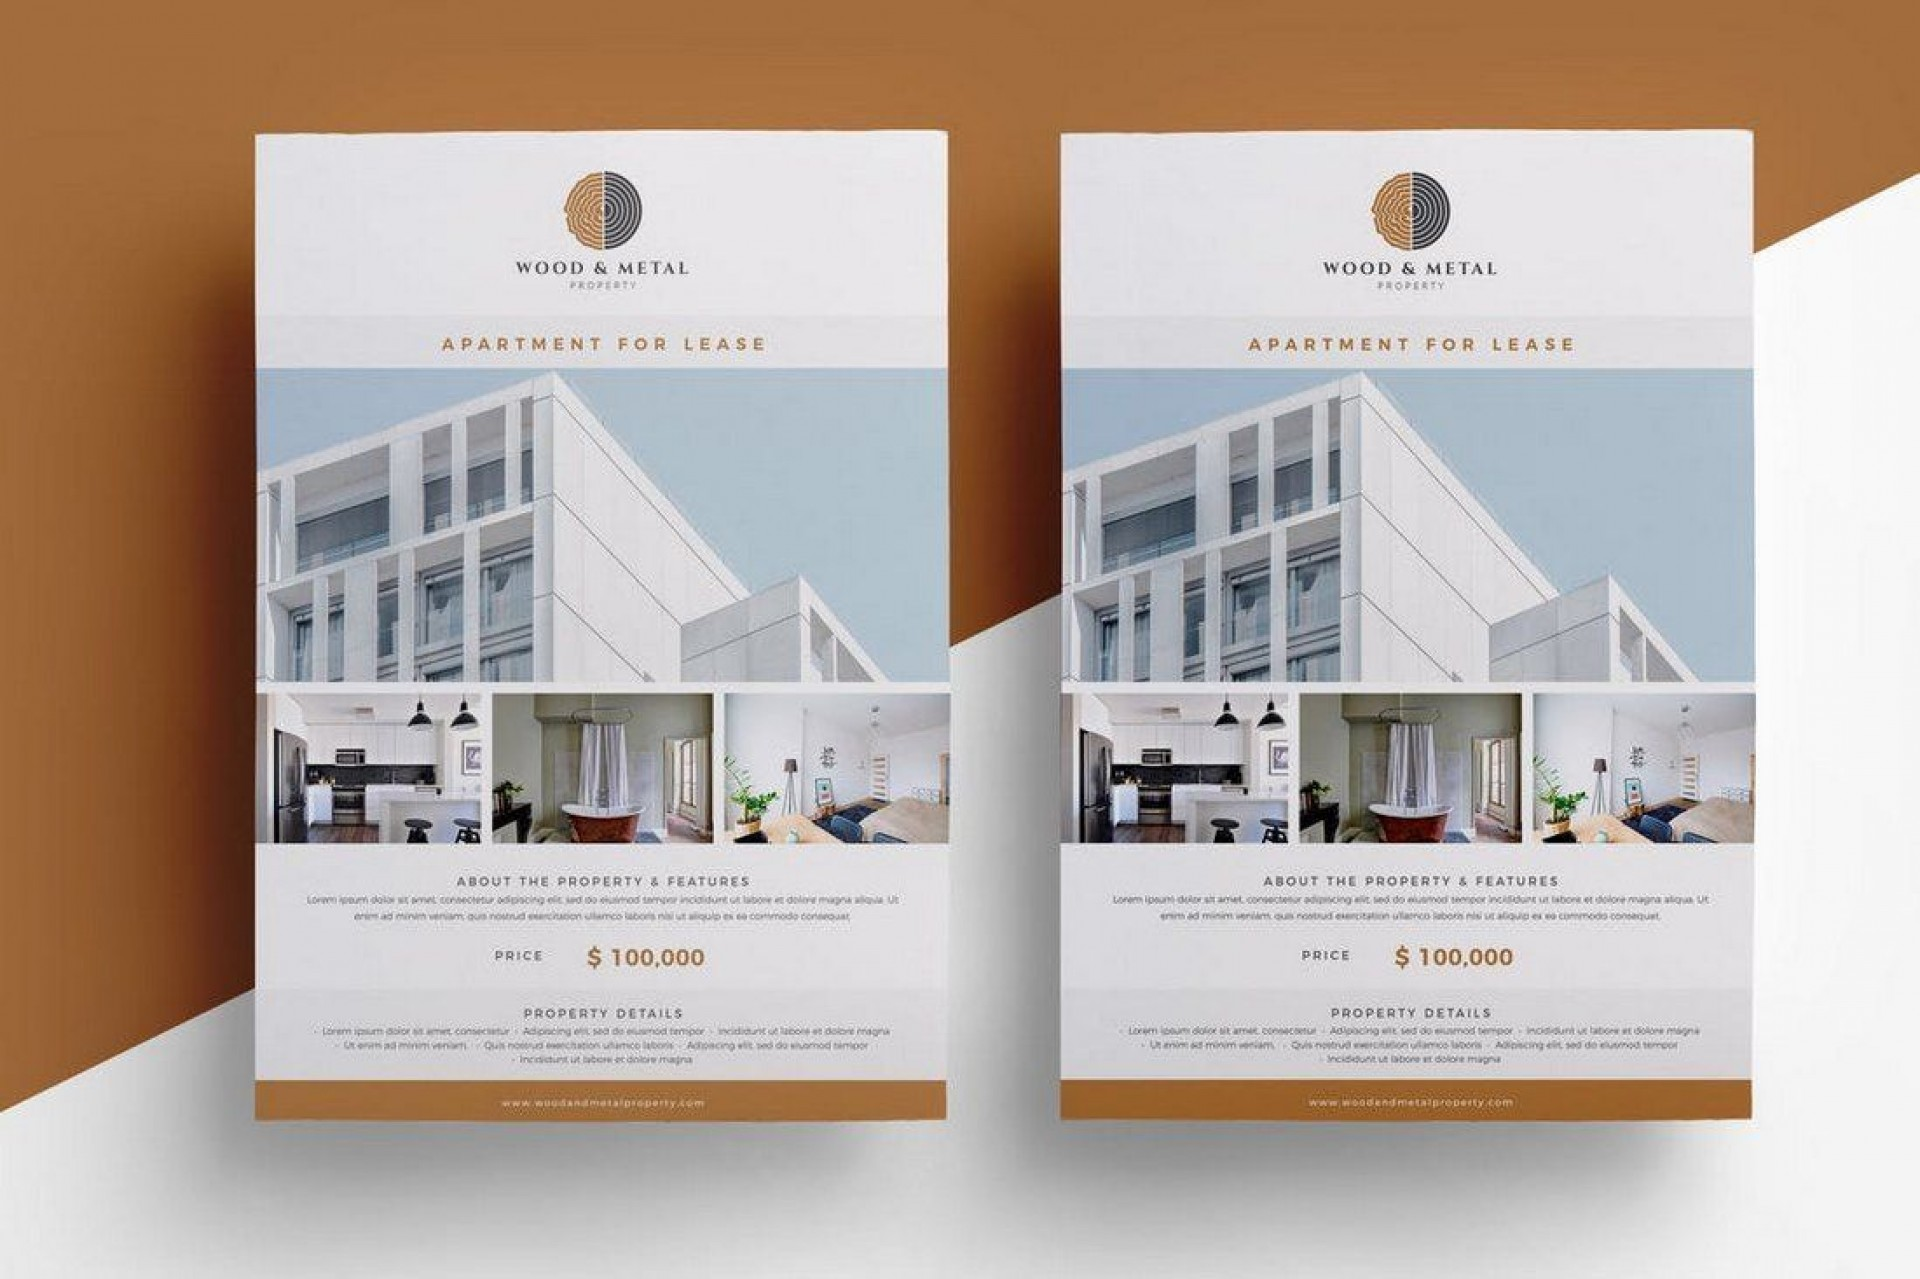 001 Singular Real Estate Ad Template High Def  Templates Commercial Free Listing Flyer Instagram1920